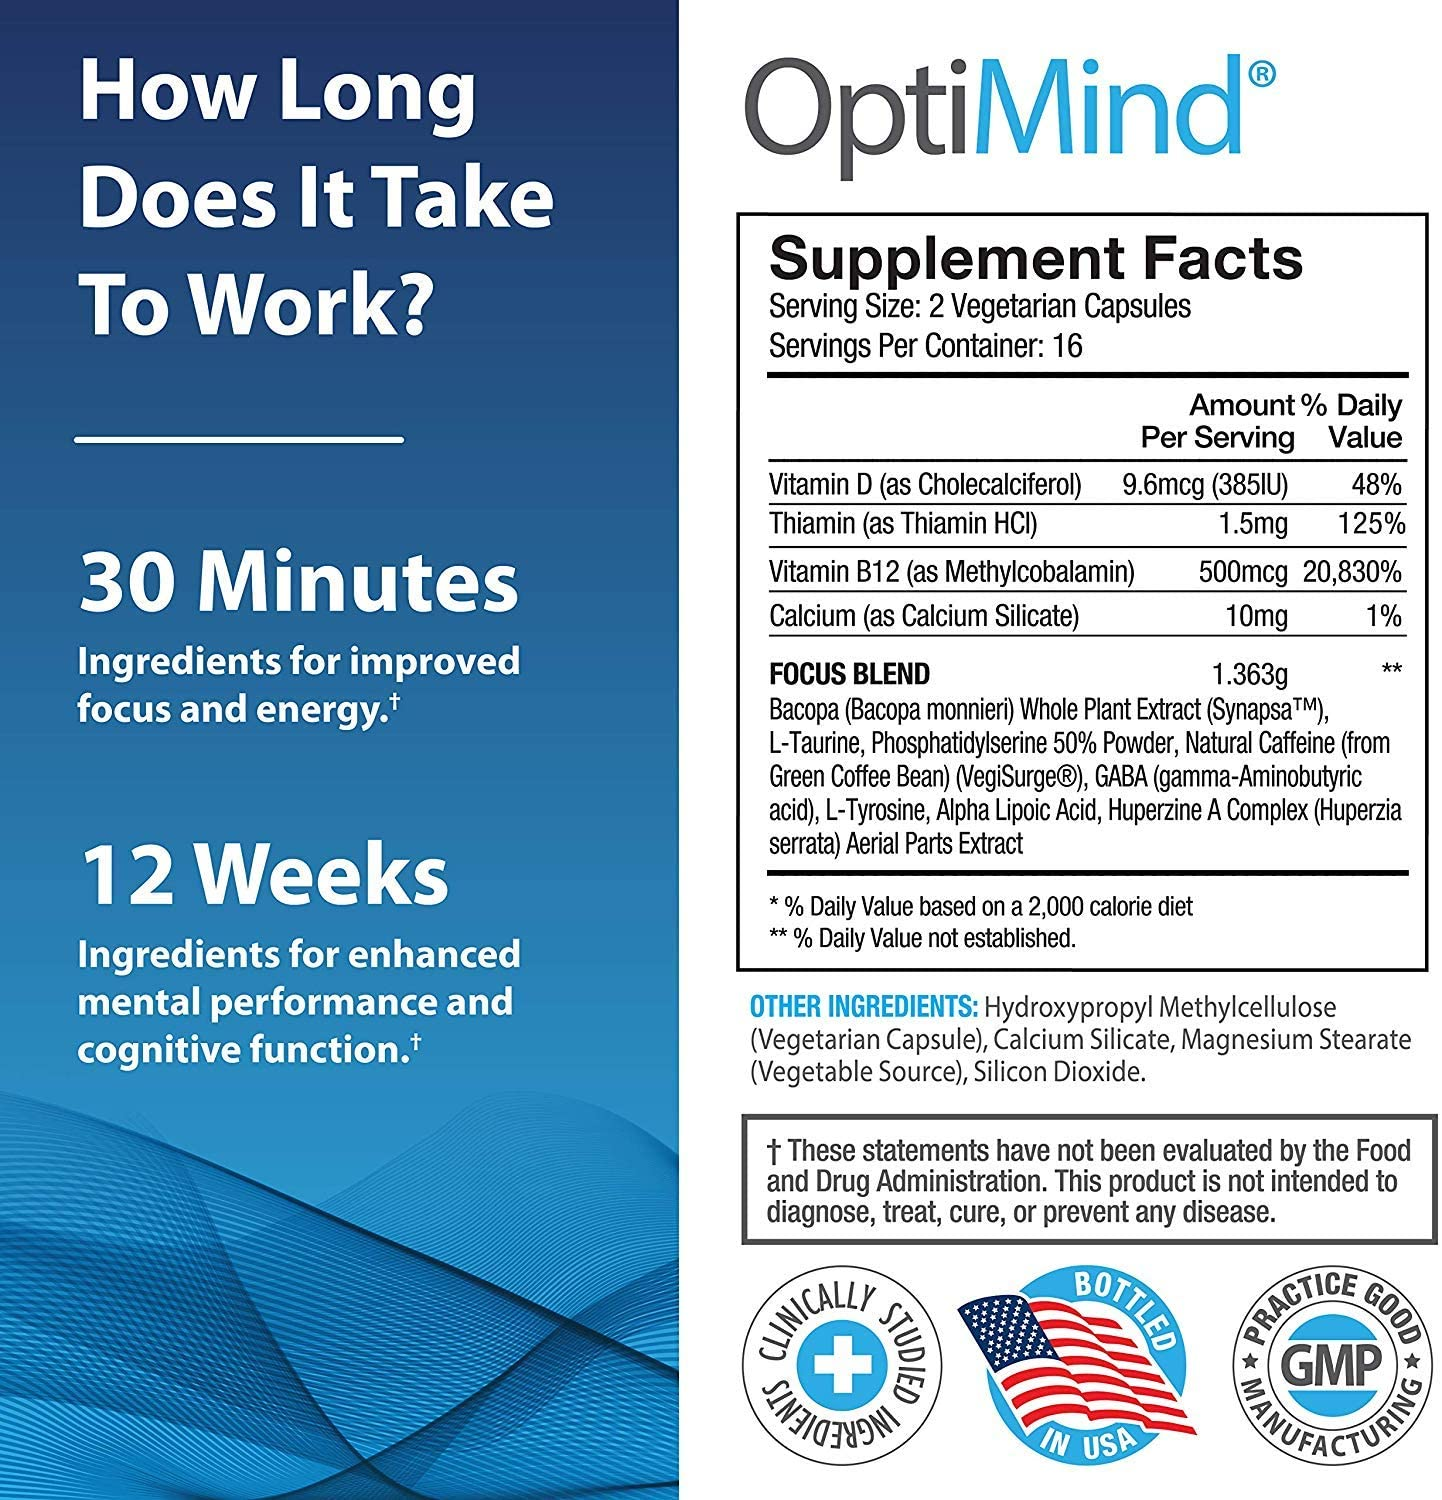 Optimind product label instructions